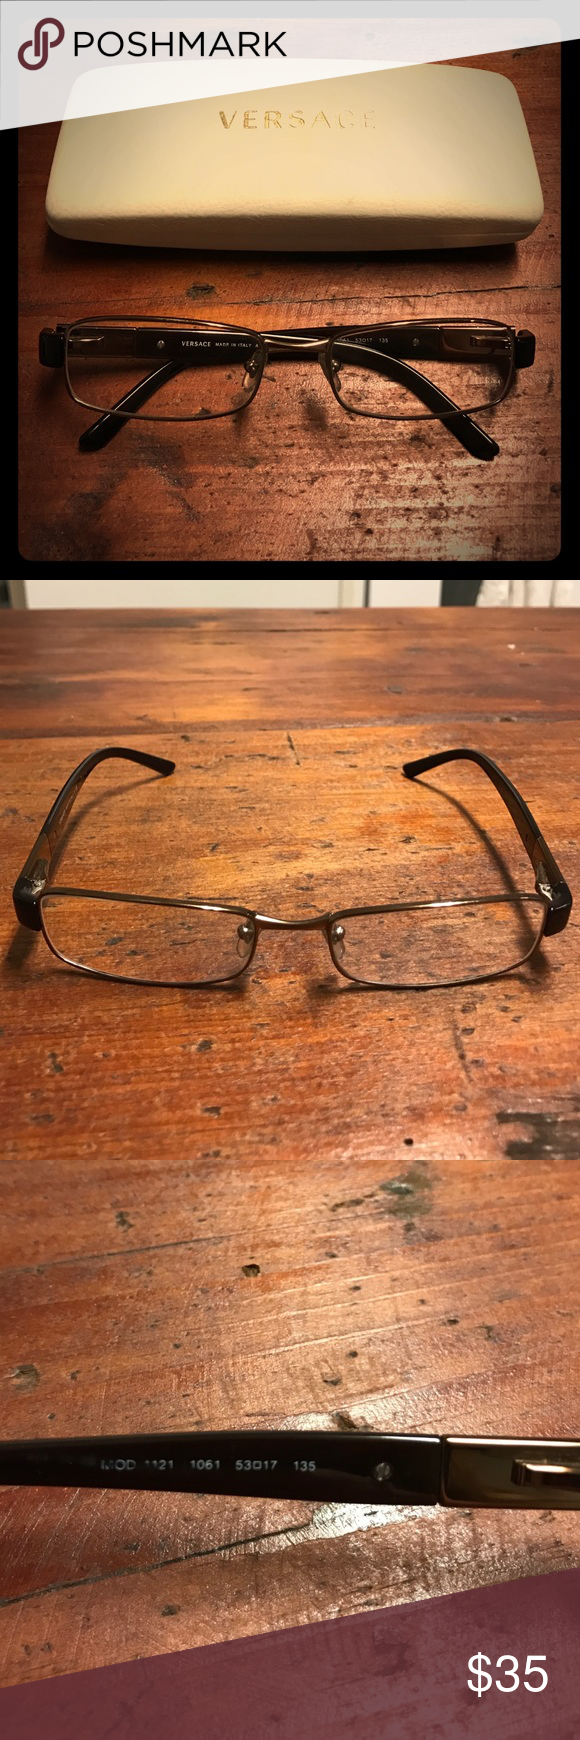 """Versace Bronze & Brown Eyeglasses Rx Thin metal & plastic frame Rx glasses in good used condition, just replace with your lenses! Some scratches on frame, particularly by earpiece (see 4th pic, hard to photograph), but overall doesn't detract from the frames. Plastic arms with metal """"Versace"""" logo. Case included, has stains/signs of wear but works perfectly fine. Versace Accessories Glasses"""